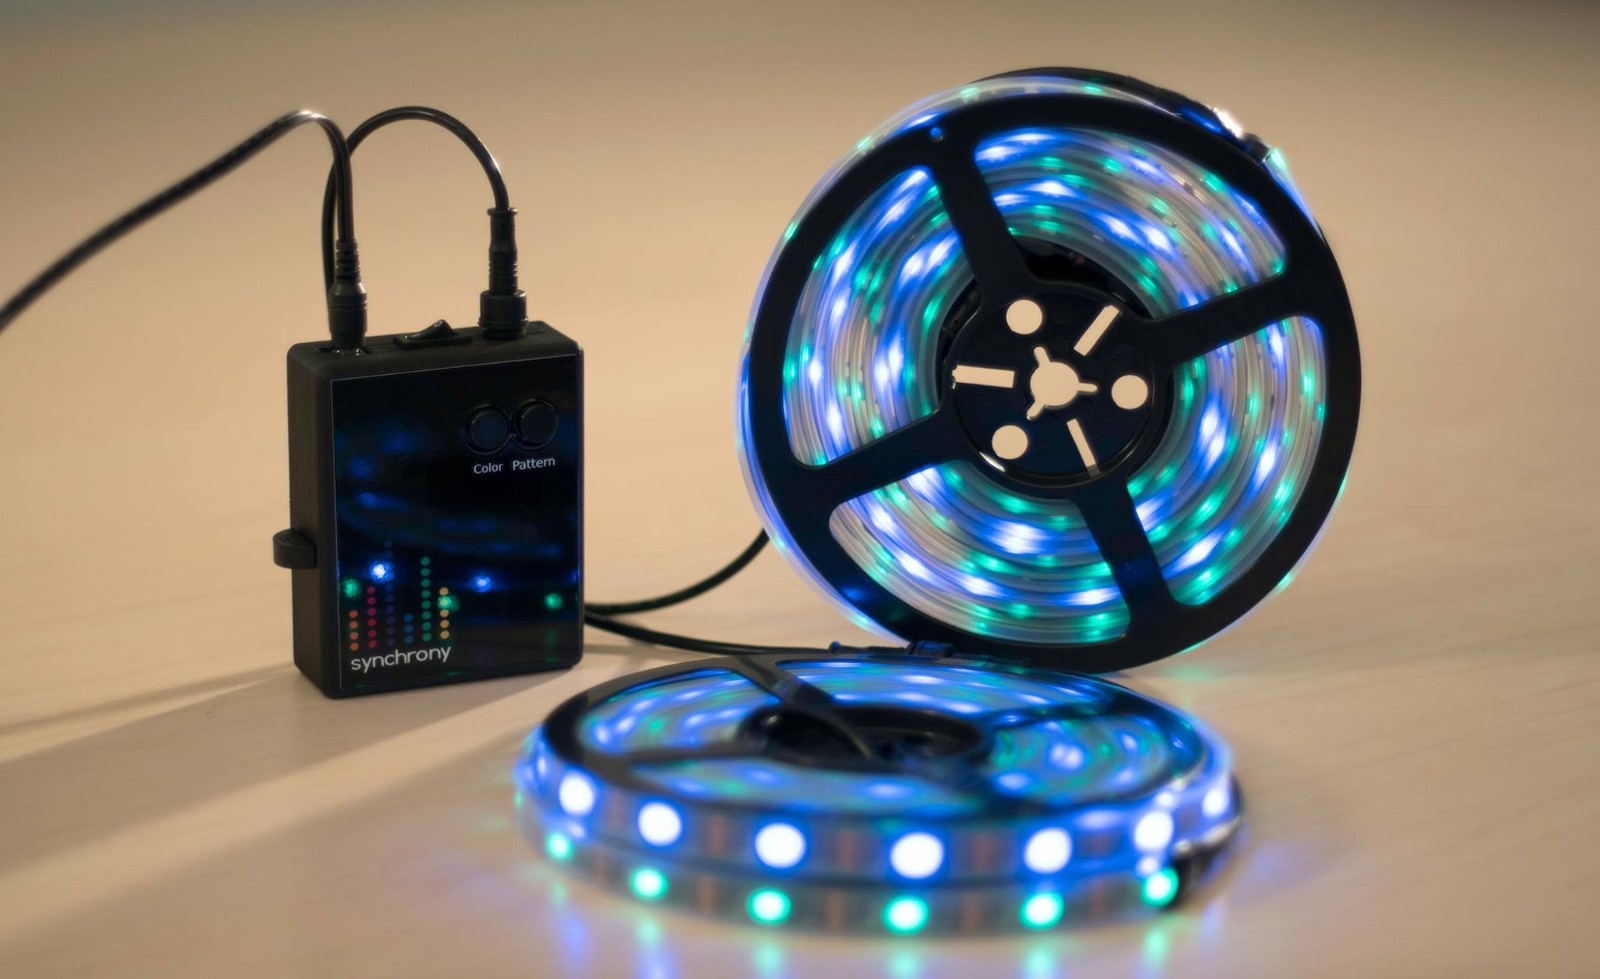 Synchrony LED Controller Responds Intelligently to Music